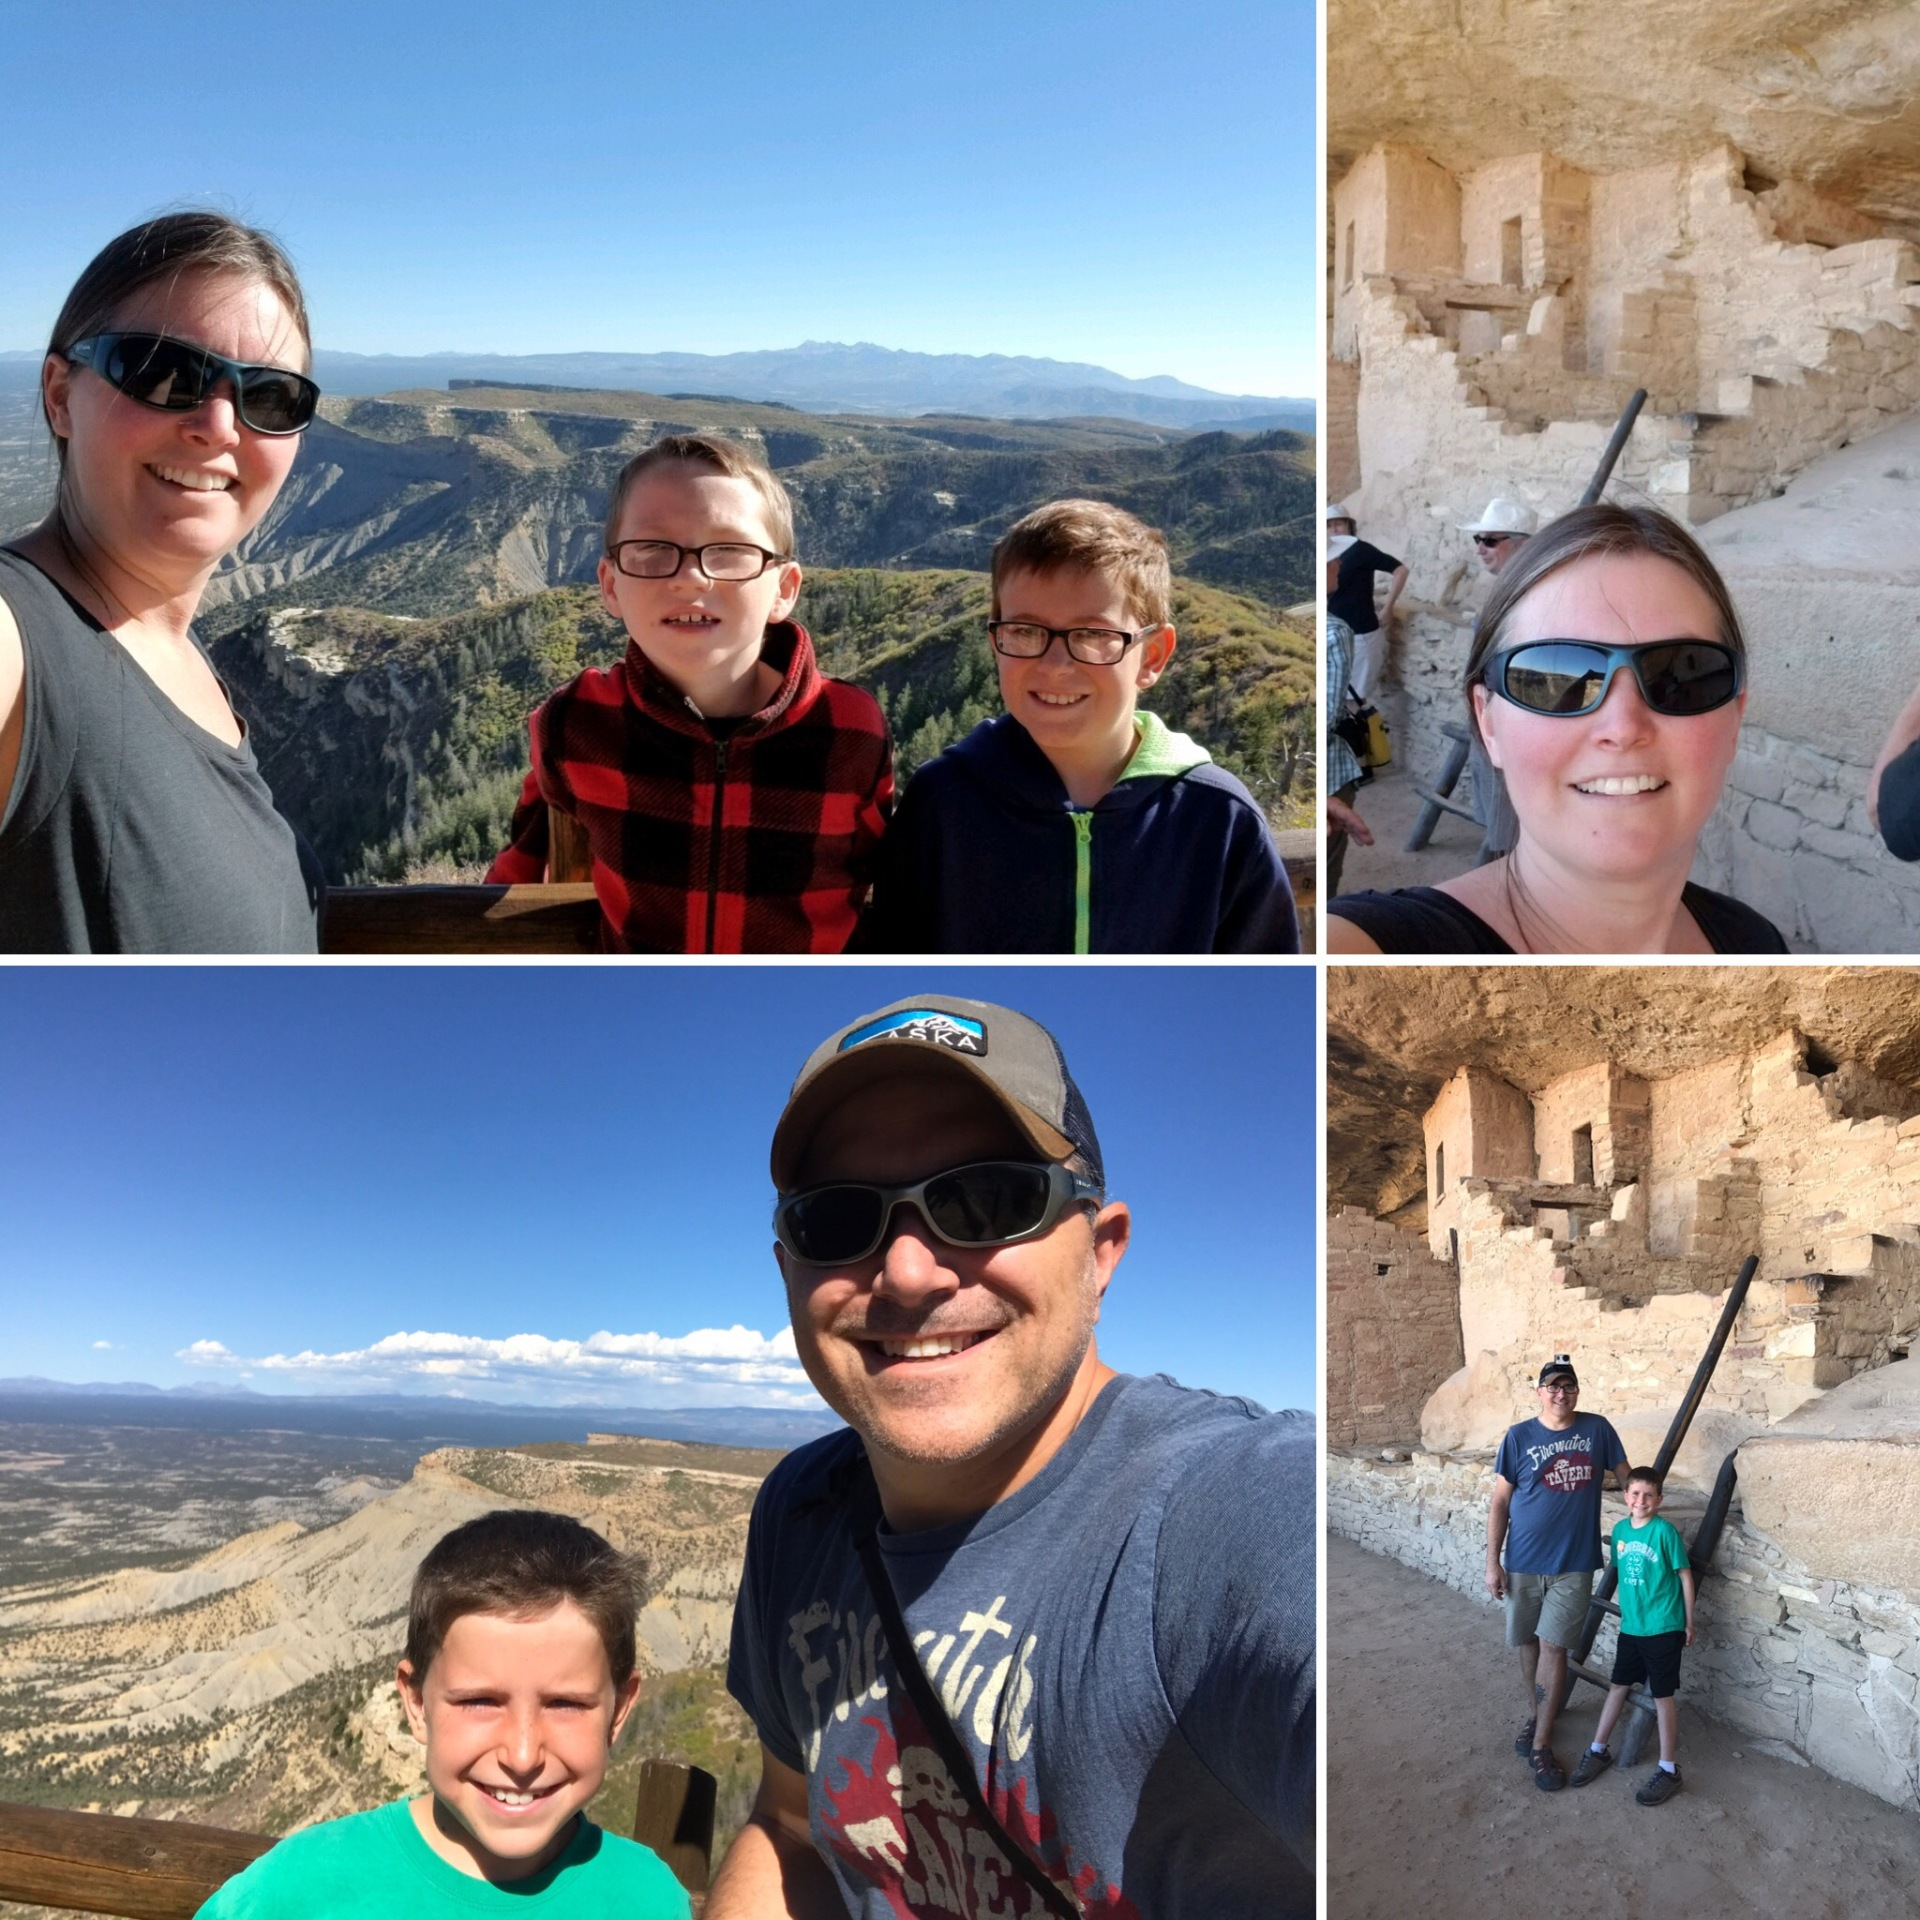 RoadSchool Fieldtrip to Mesa Verde National Park